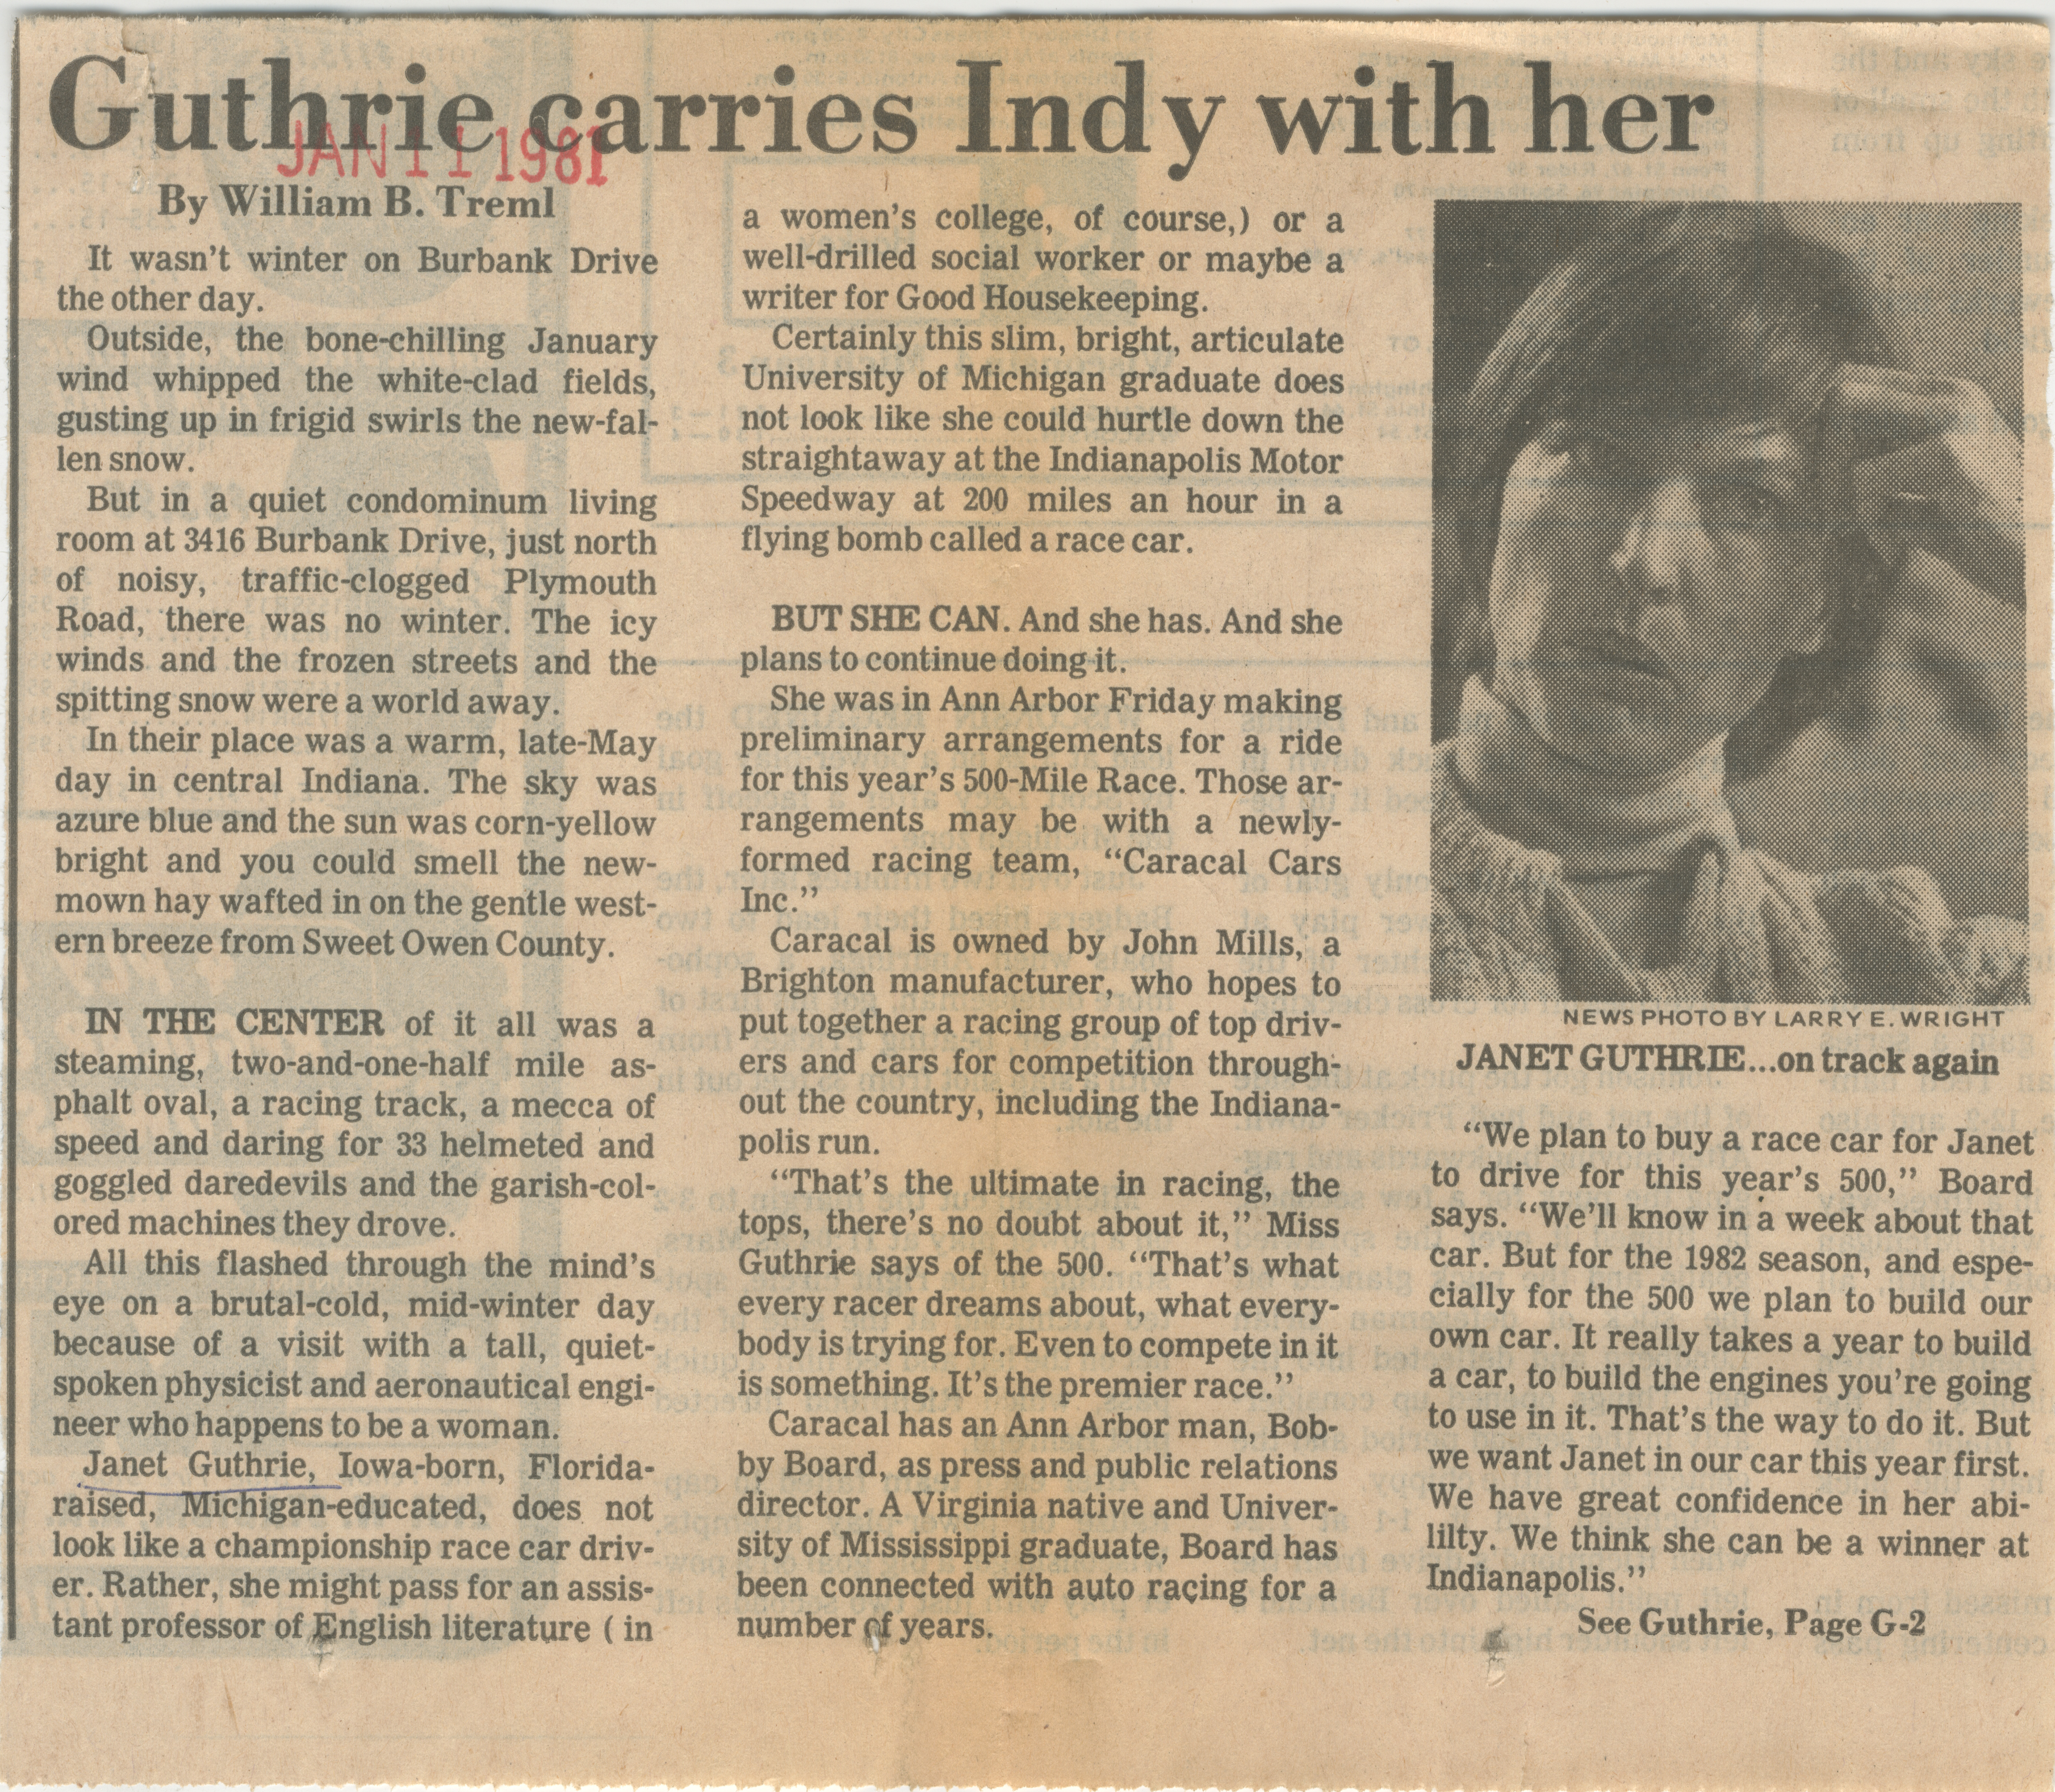 Guthrie carries Indy with her  image